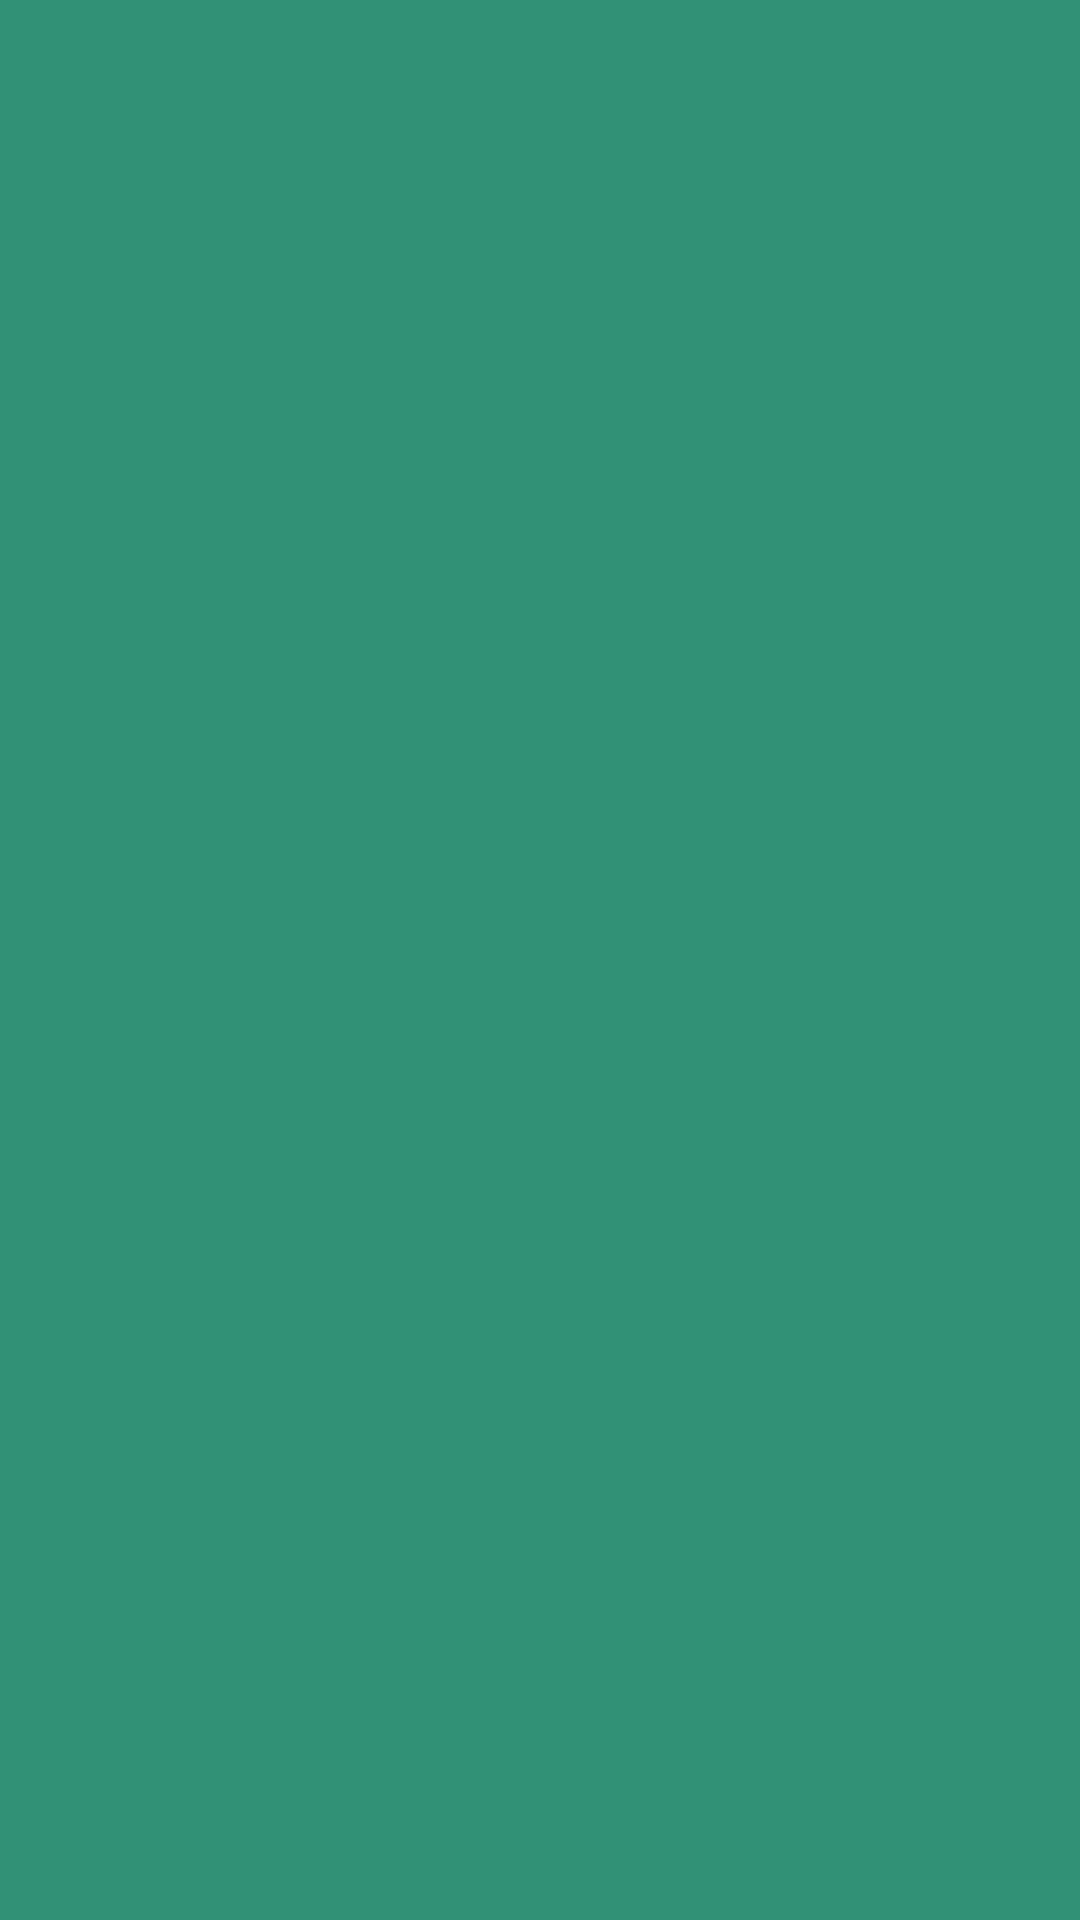 1080x1920 Illuminating Emerald Solid Color Background